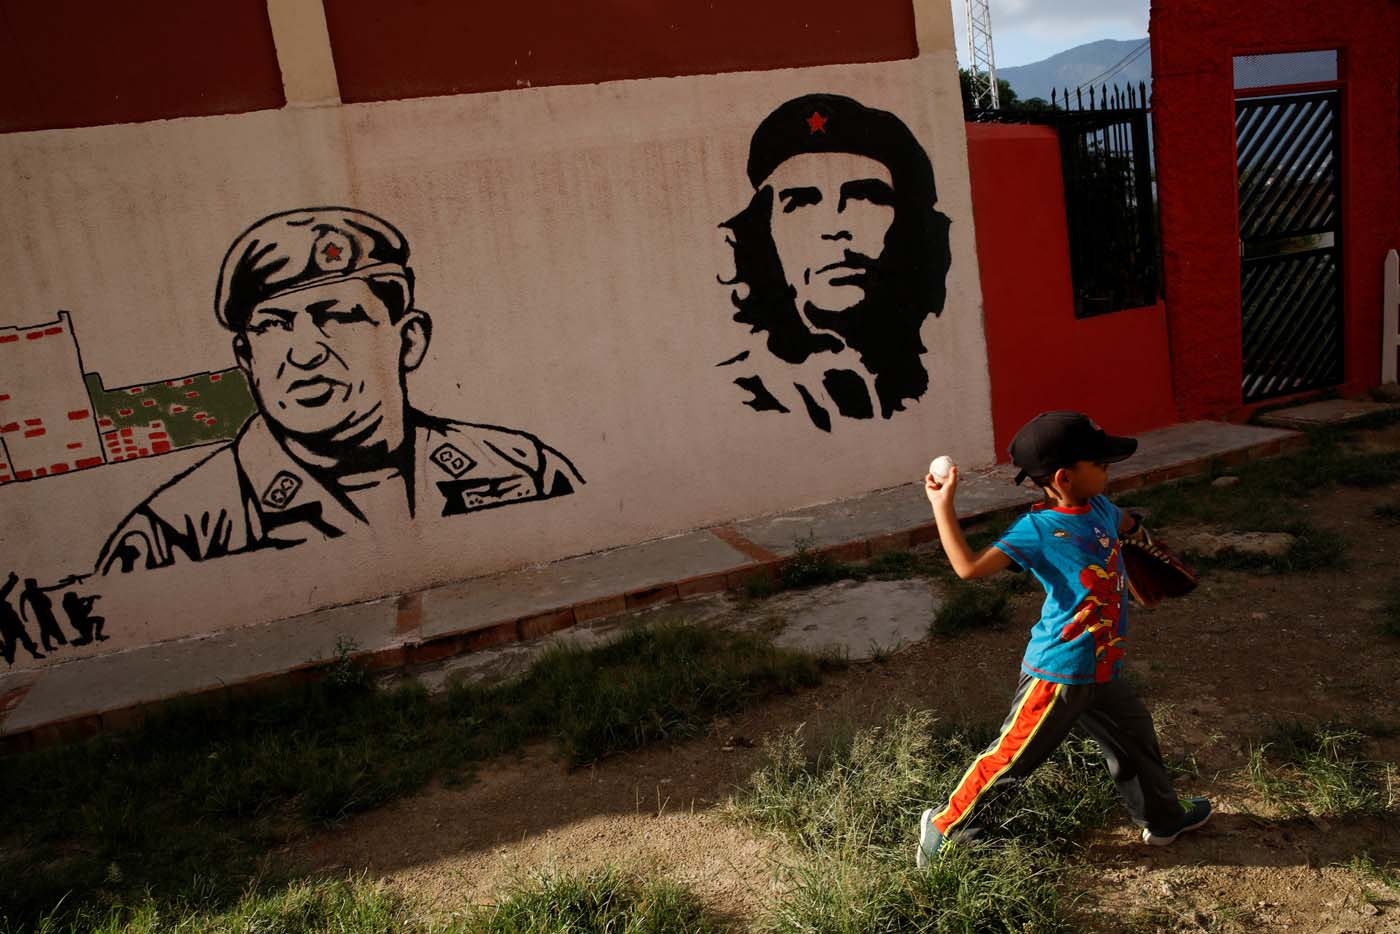 Jesus Cordova (7), practices in front of a mural depicting Venezuela's late President Hugo Chavez (L) and revolutionary leader Ernesto 'Che' Guevara in Caracas, Venezuela August 29, 2017. Picture taken August 29, 2017. REUTERS/Carlos Garcia Rawlins FOR EDITORIAL USE ONLY. NO RESALES. NO ARCHIVES.